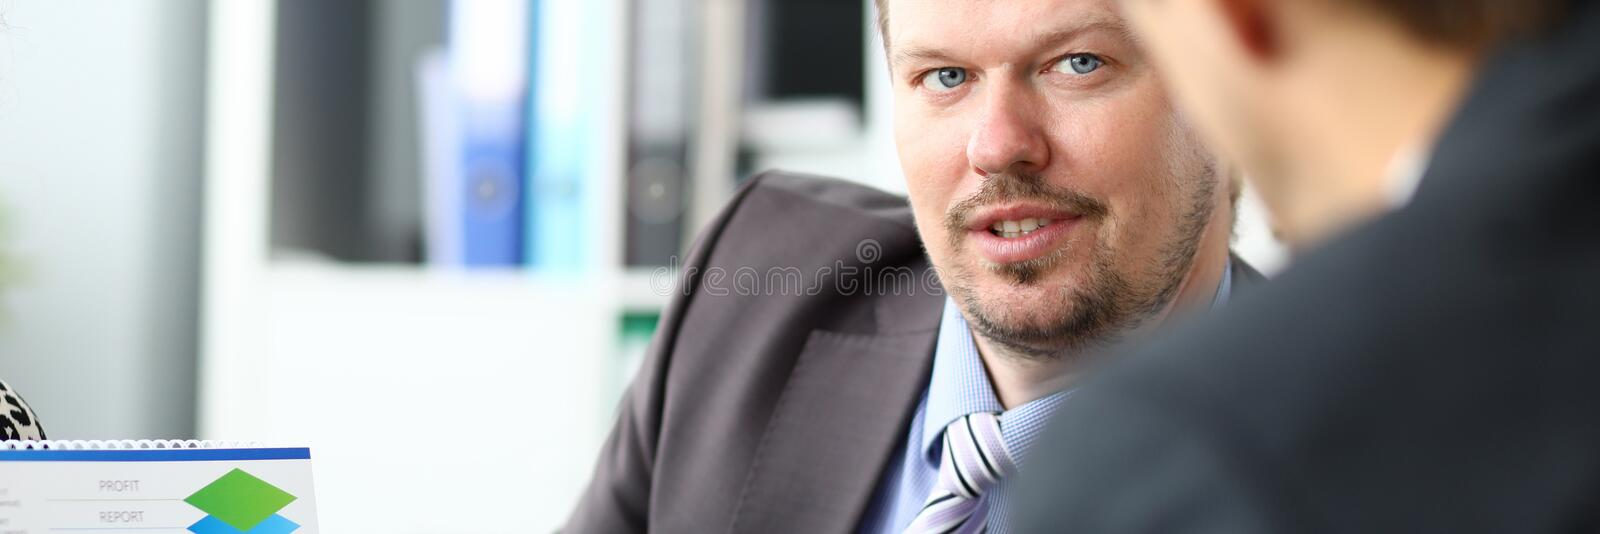 Two businessman one on one meeting stock image